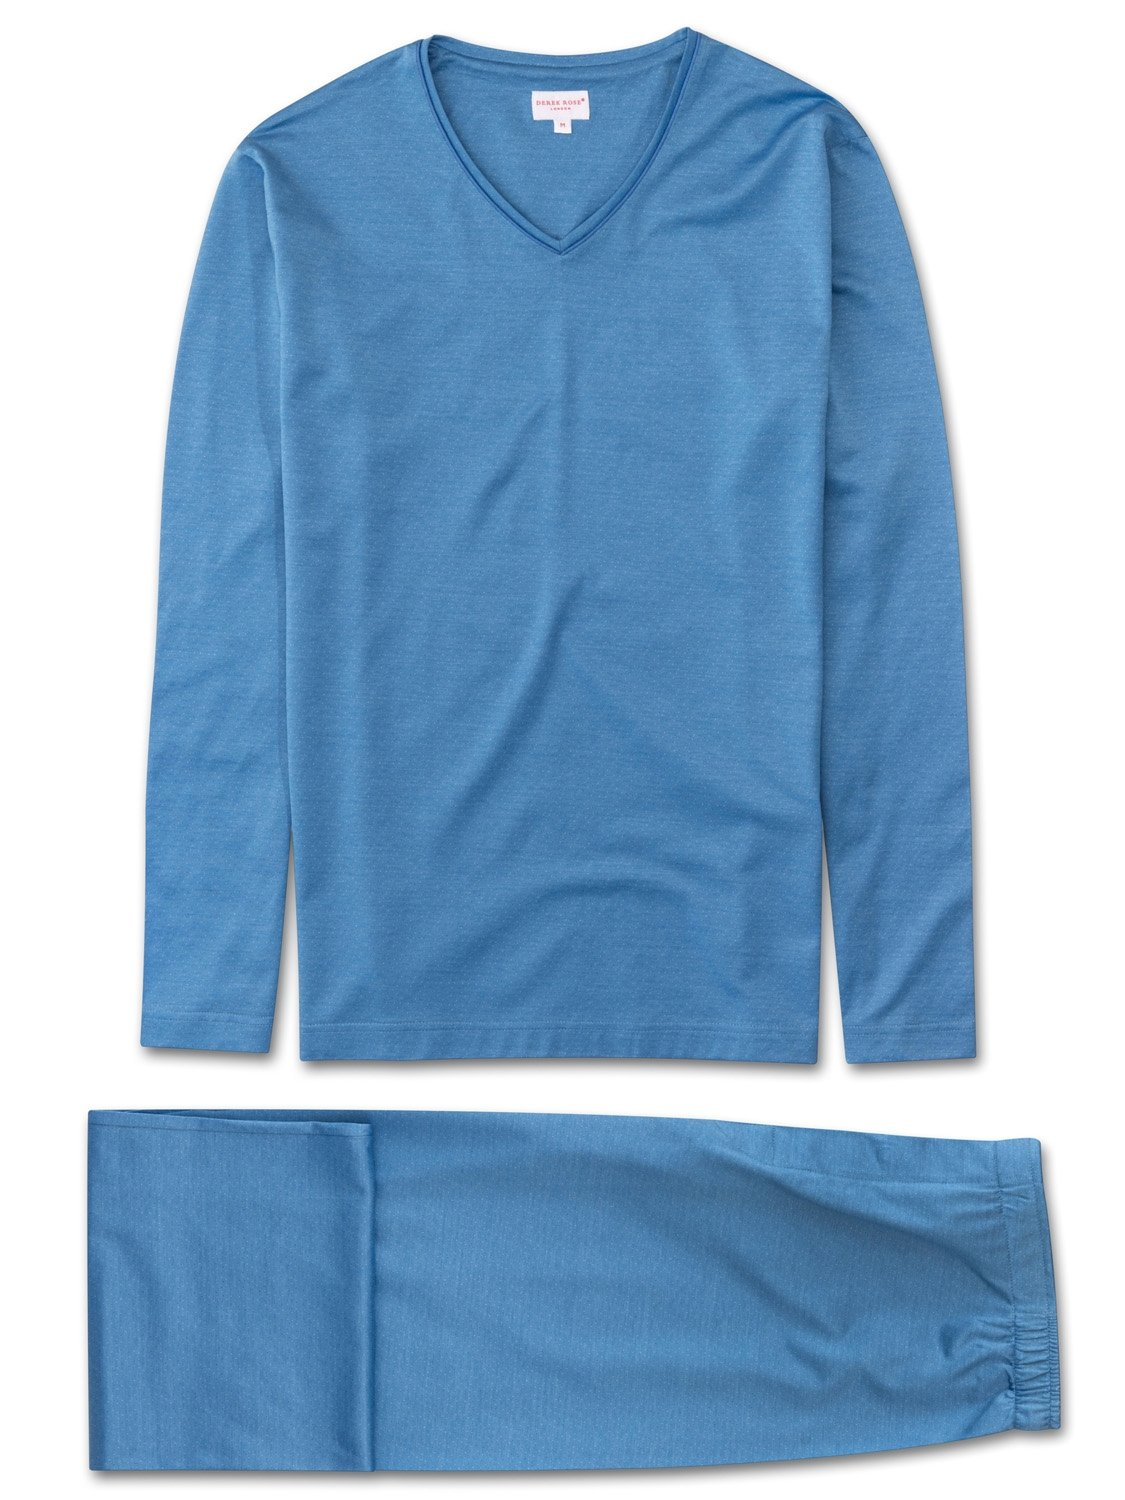 Men's Jersey V-Neck Pyjamas Bari 14 Stretch Cotton Blue